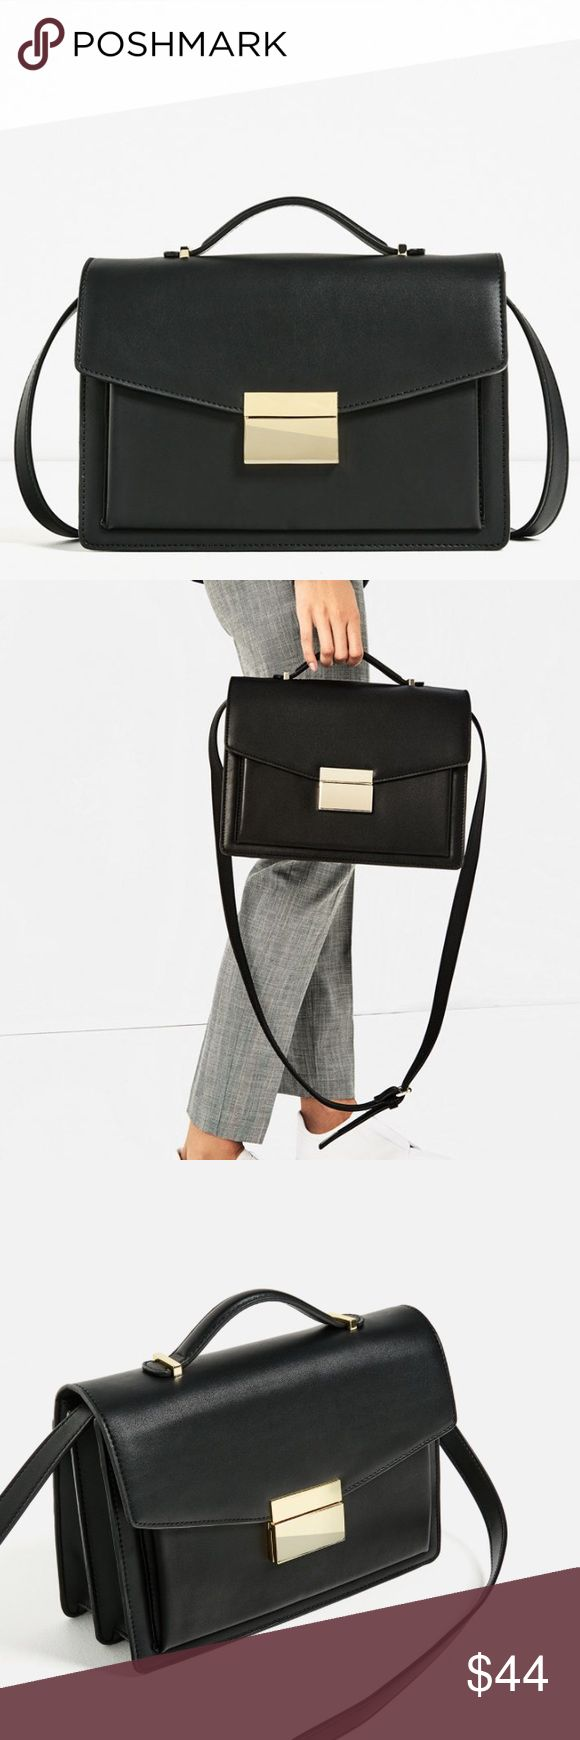 """Zara soft city bag NWT Black mini city bag. Outer pocket detail. Goldtone hardware. Detachable and adjustable shoulder strap and handle. Various lined inside compartments. Metallic closure on fold over flat. Height by width by depth: 7.4 x 11 x 3.9"""". Composition: outer 100% polyurethane. Lining 100% polyester. Filling 100% Ethylene vinyl acetate Zara Bags"""